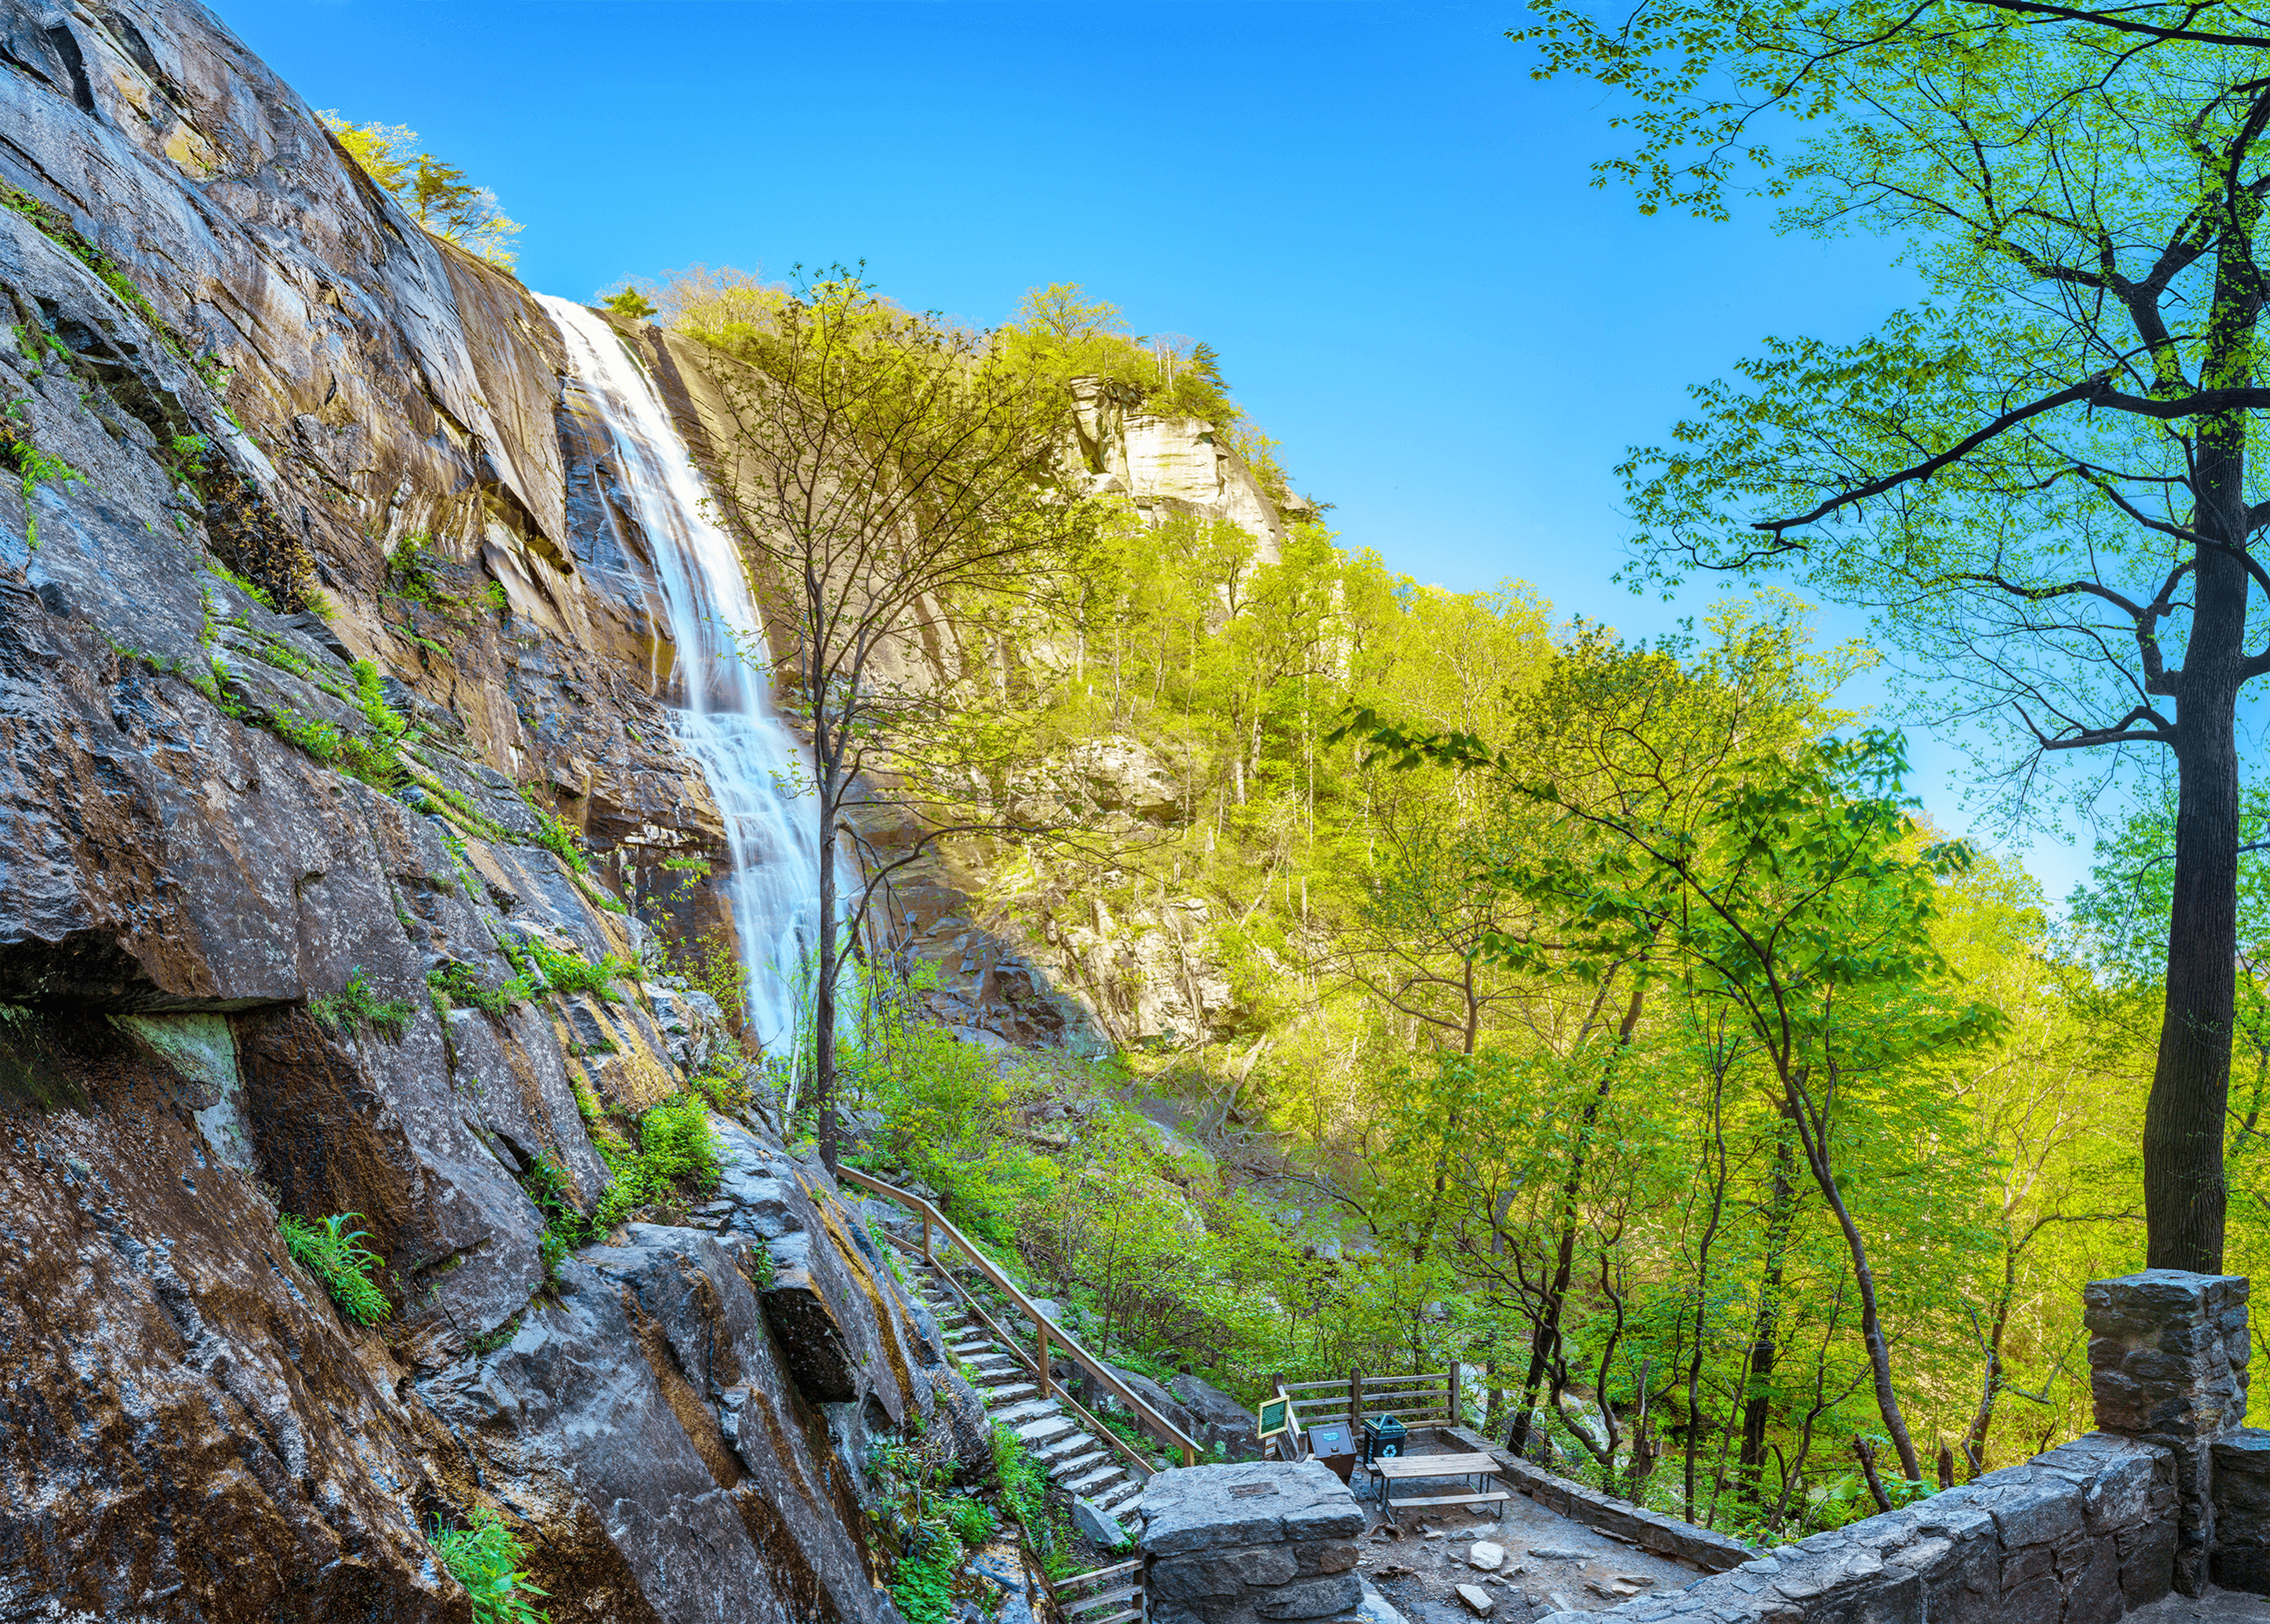 Especially after a couple of days of rain, the thundering  Hickory Nut Falls  is an impressive sight even from a distance. To get closer to the 404-foot (123 meters) waterfall, follow the path with the stone steps.